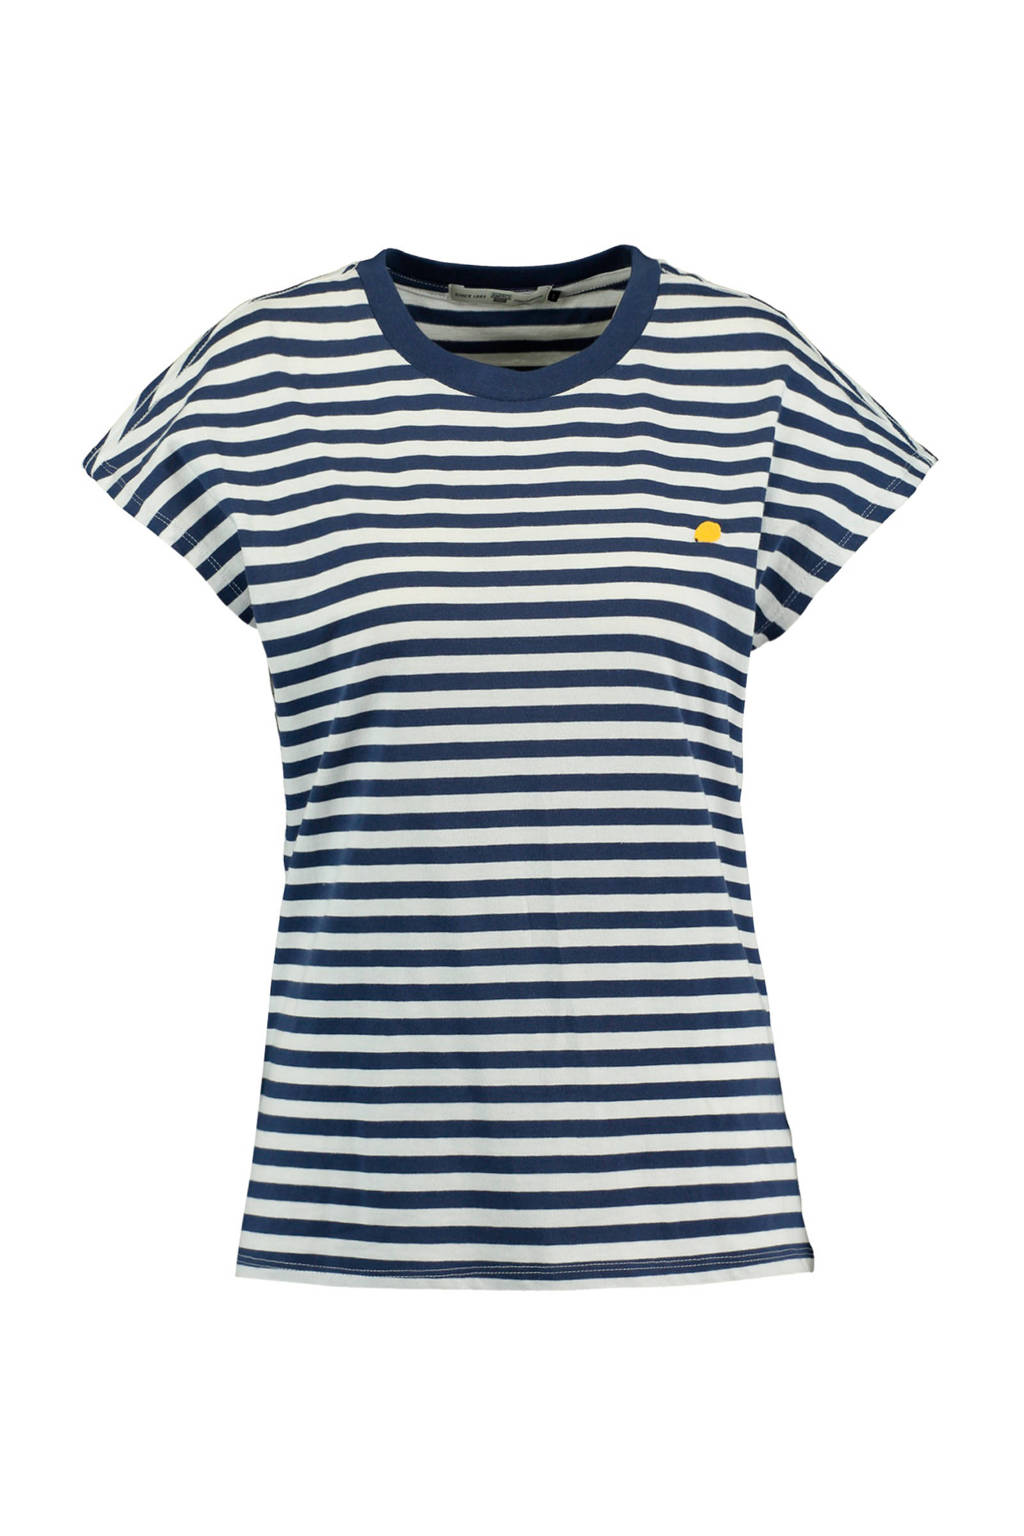 America Today T-shirt Engy blauw/wit, Blauw/wit